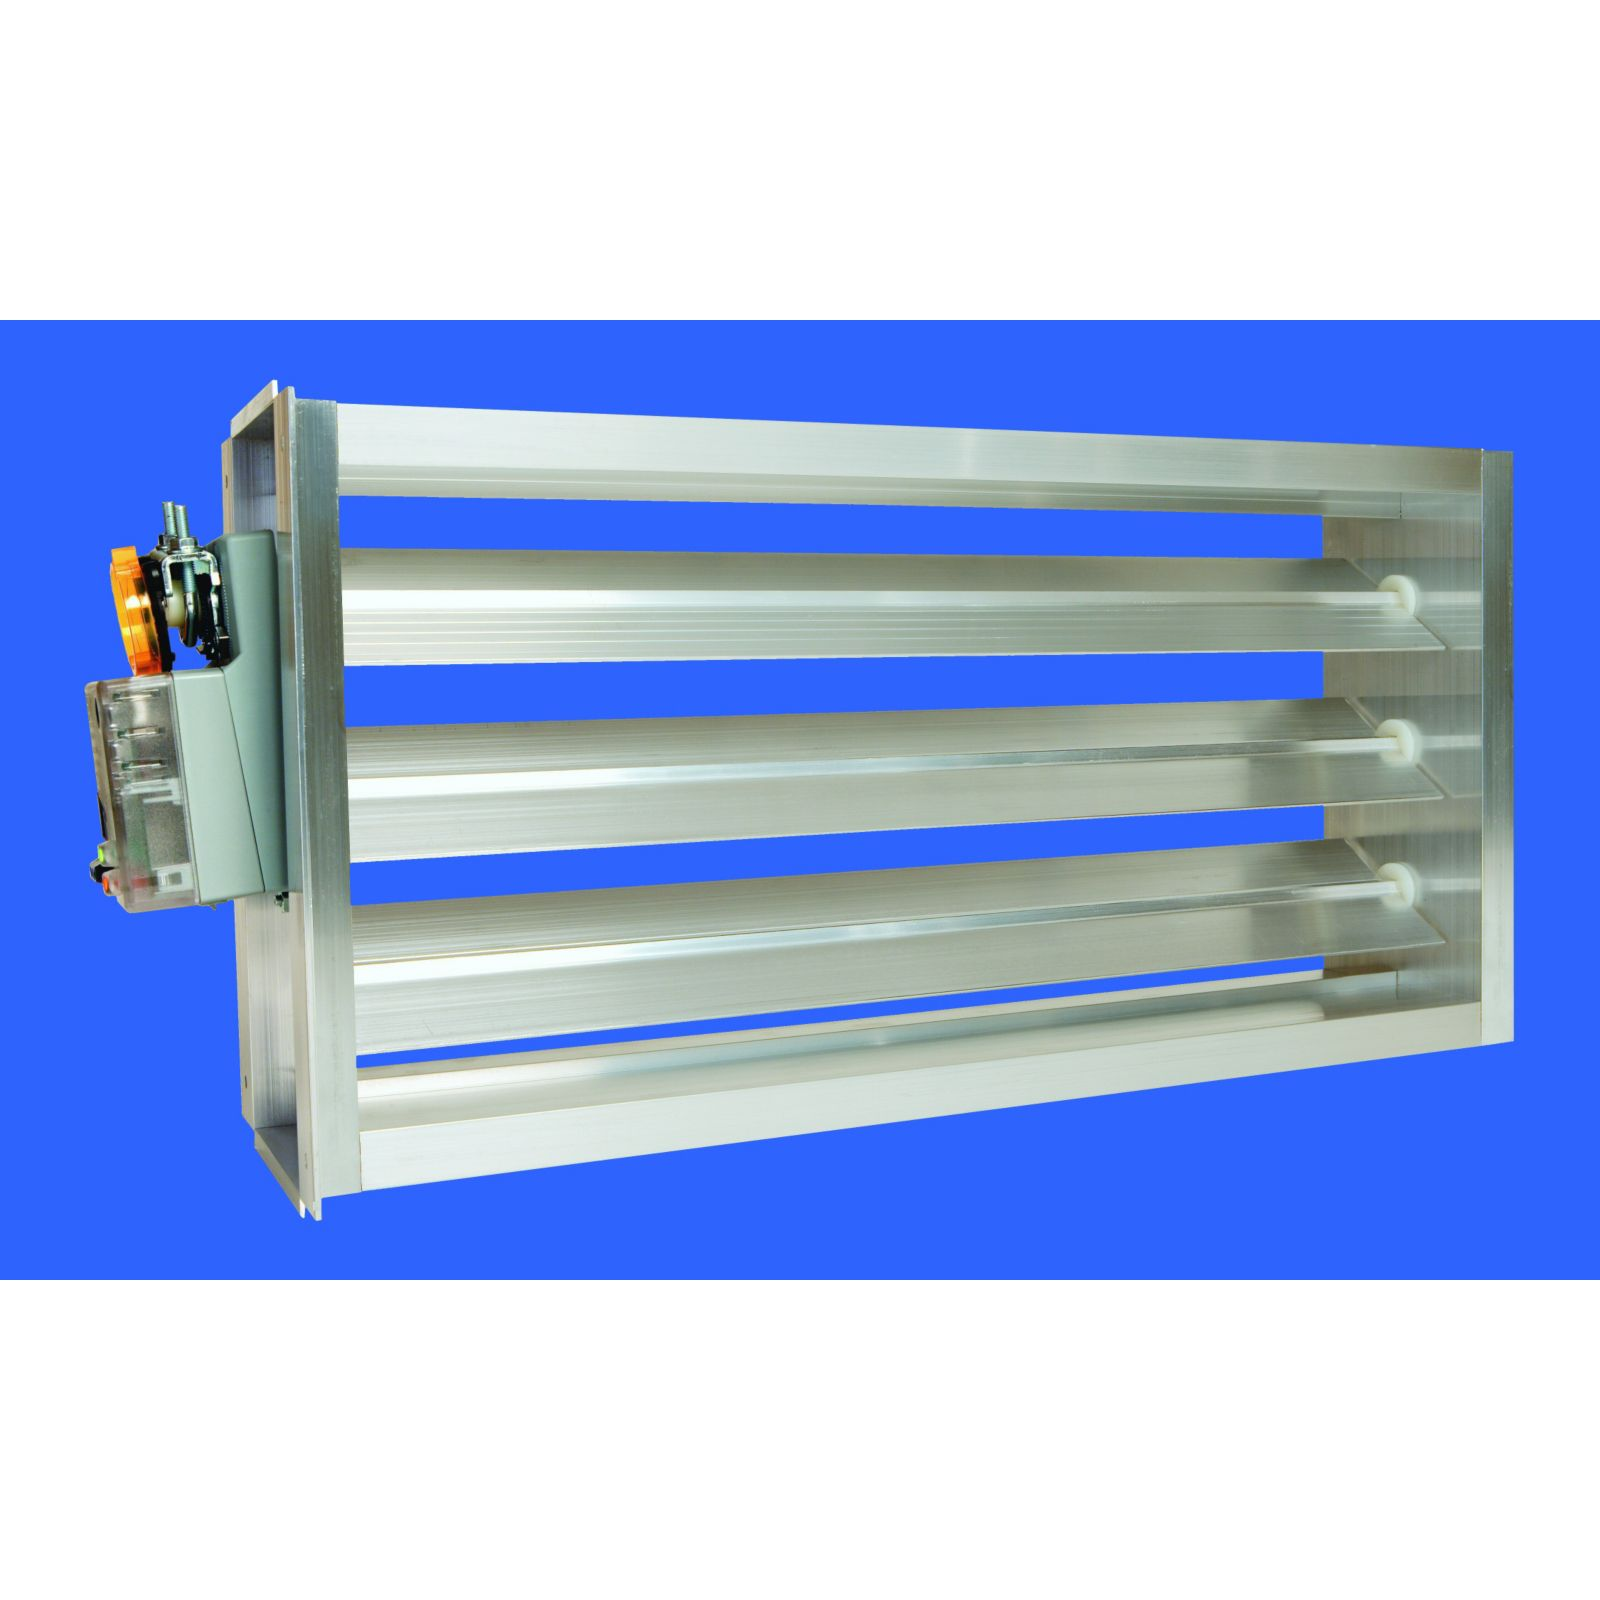 "EWC 20X6 ND - Motorized Ultra-Zone Damper, 20"" X 6"""